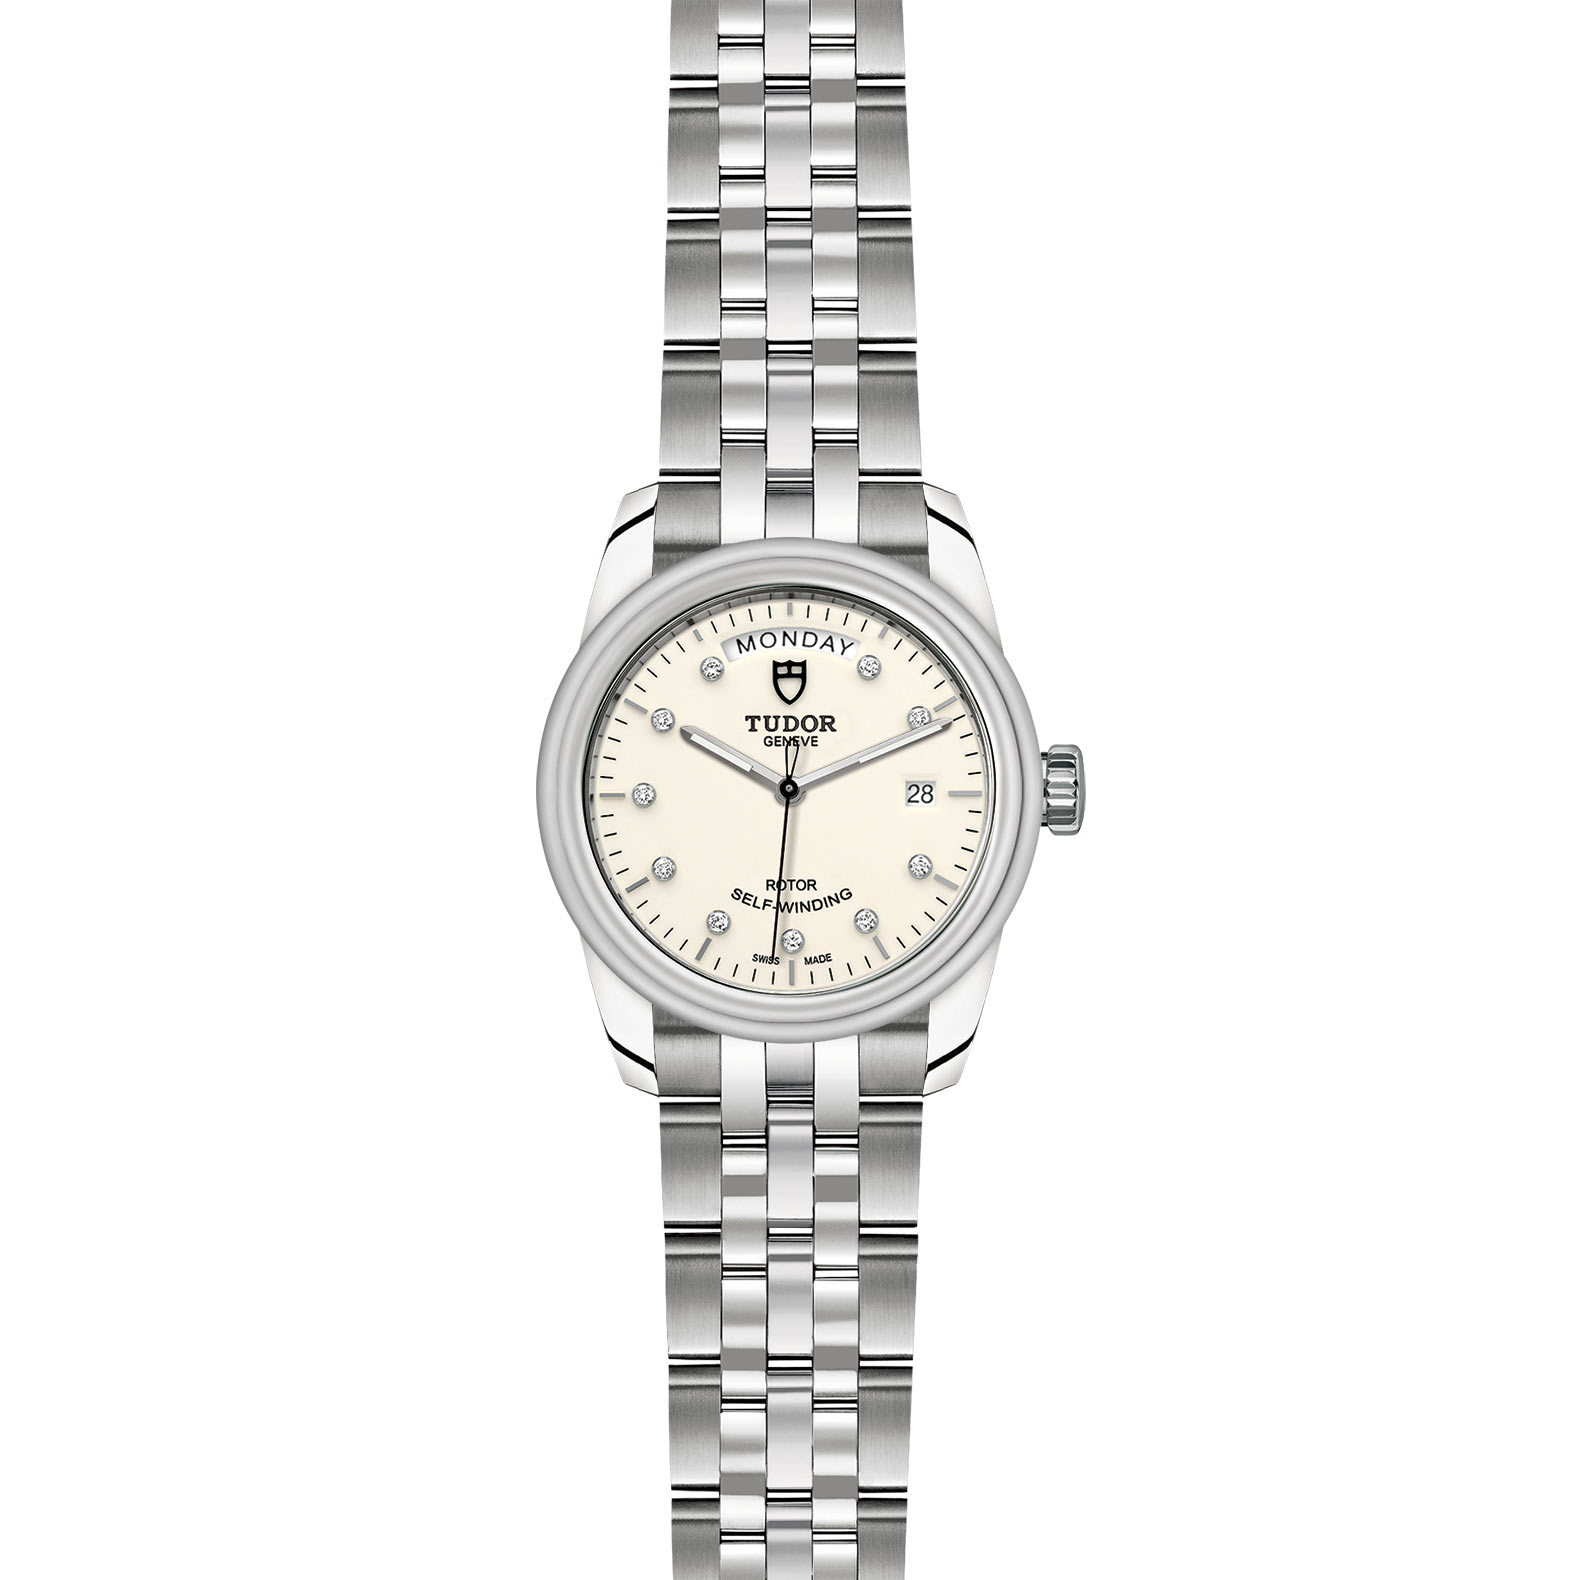 TUDOR Glamour Date Day M56000 0182 Frontfacing